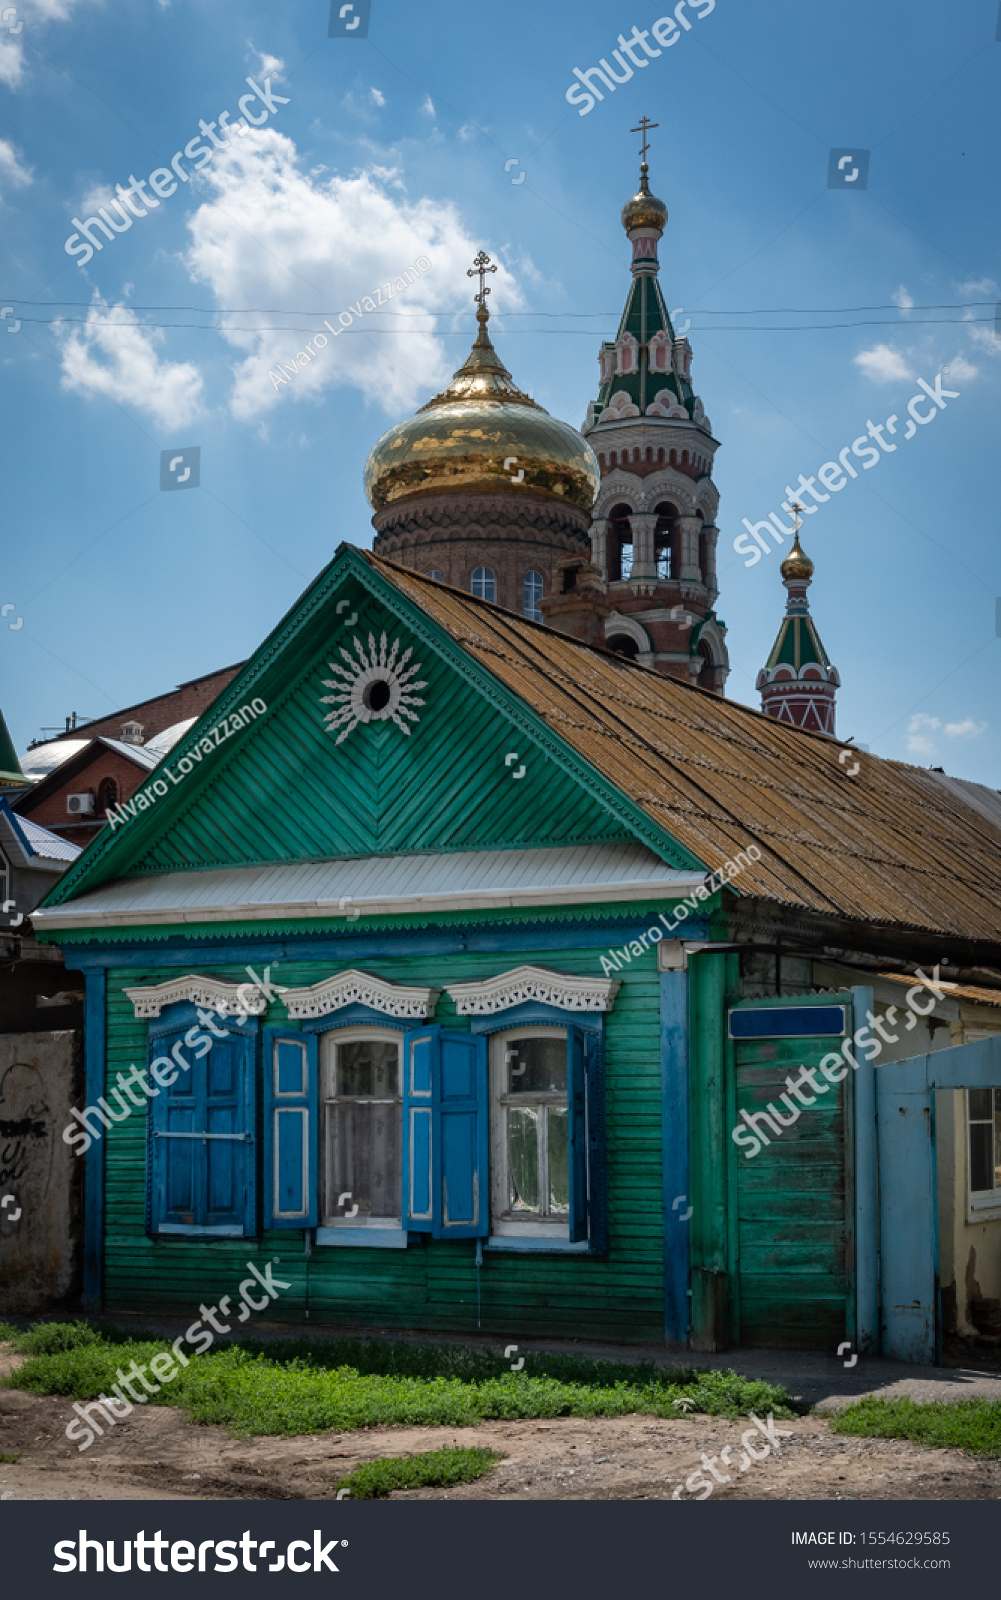 Traditional house in Astrakhan with an orthodox church in background, Russia